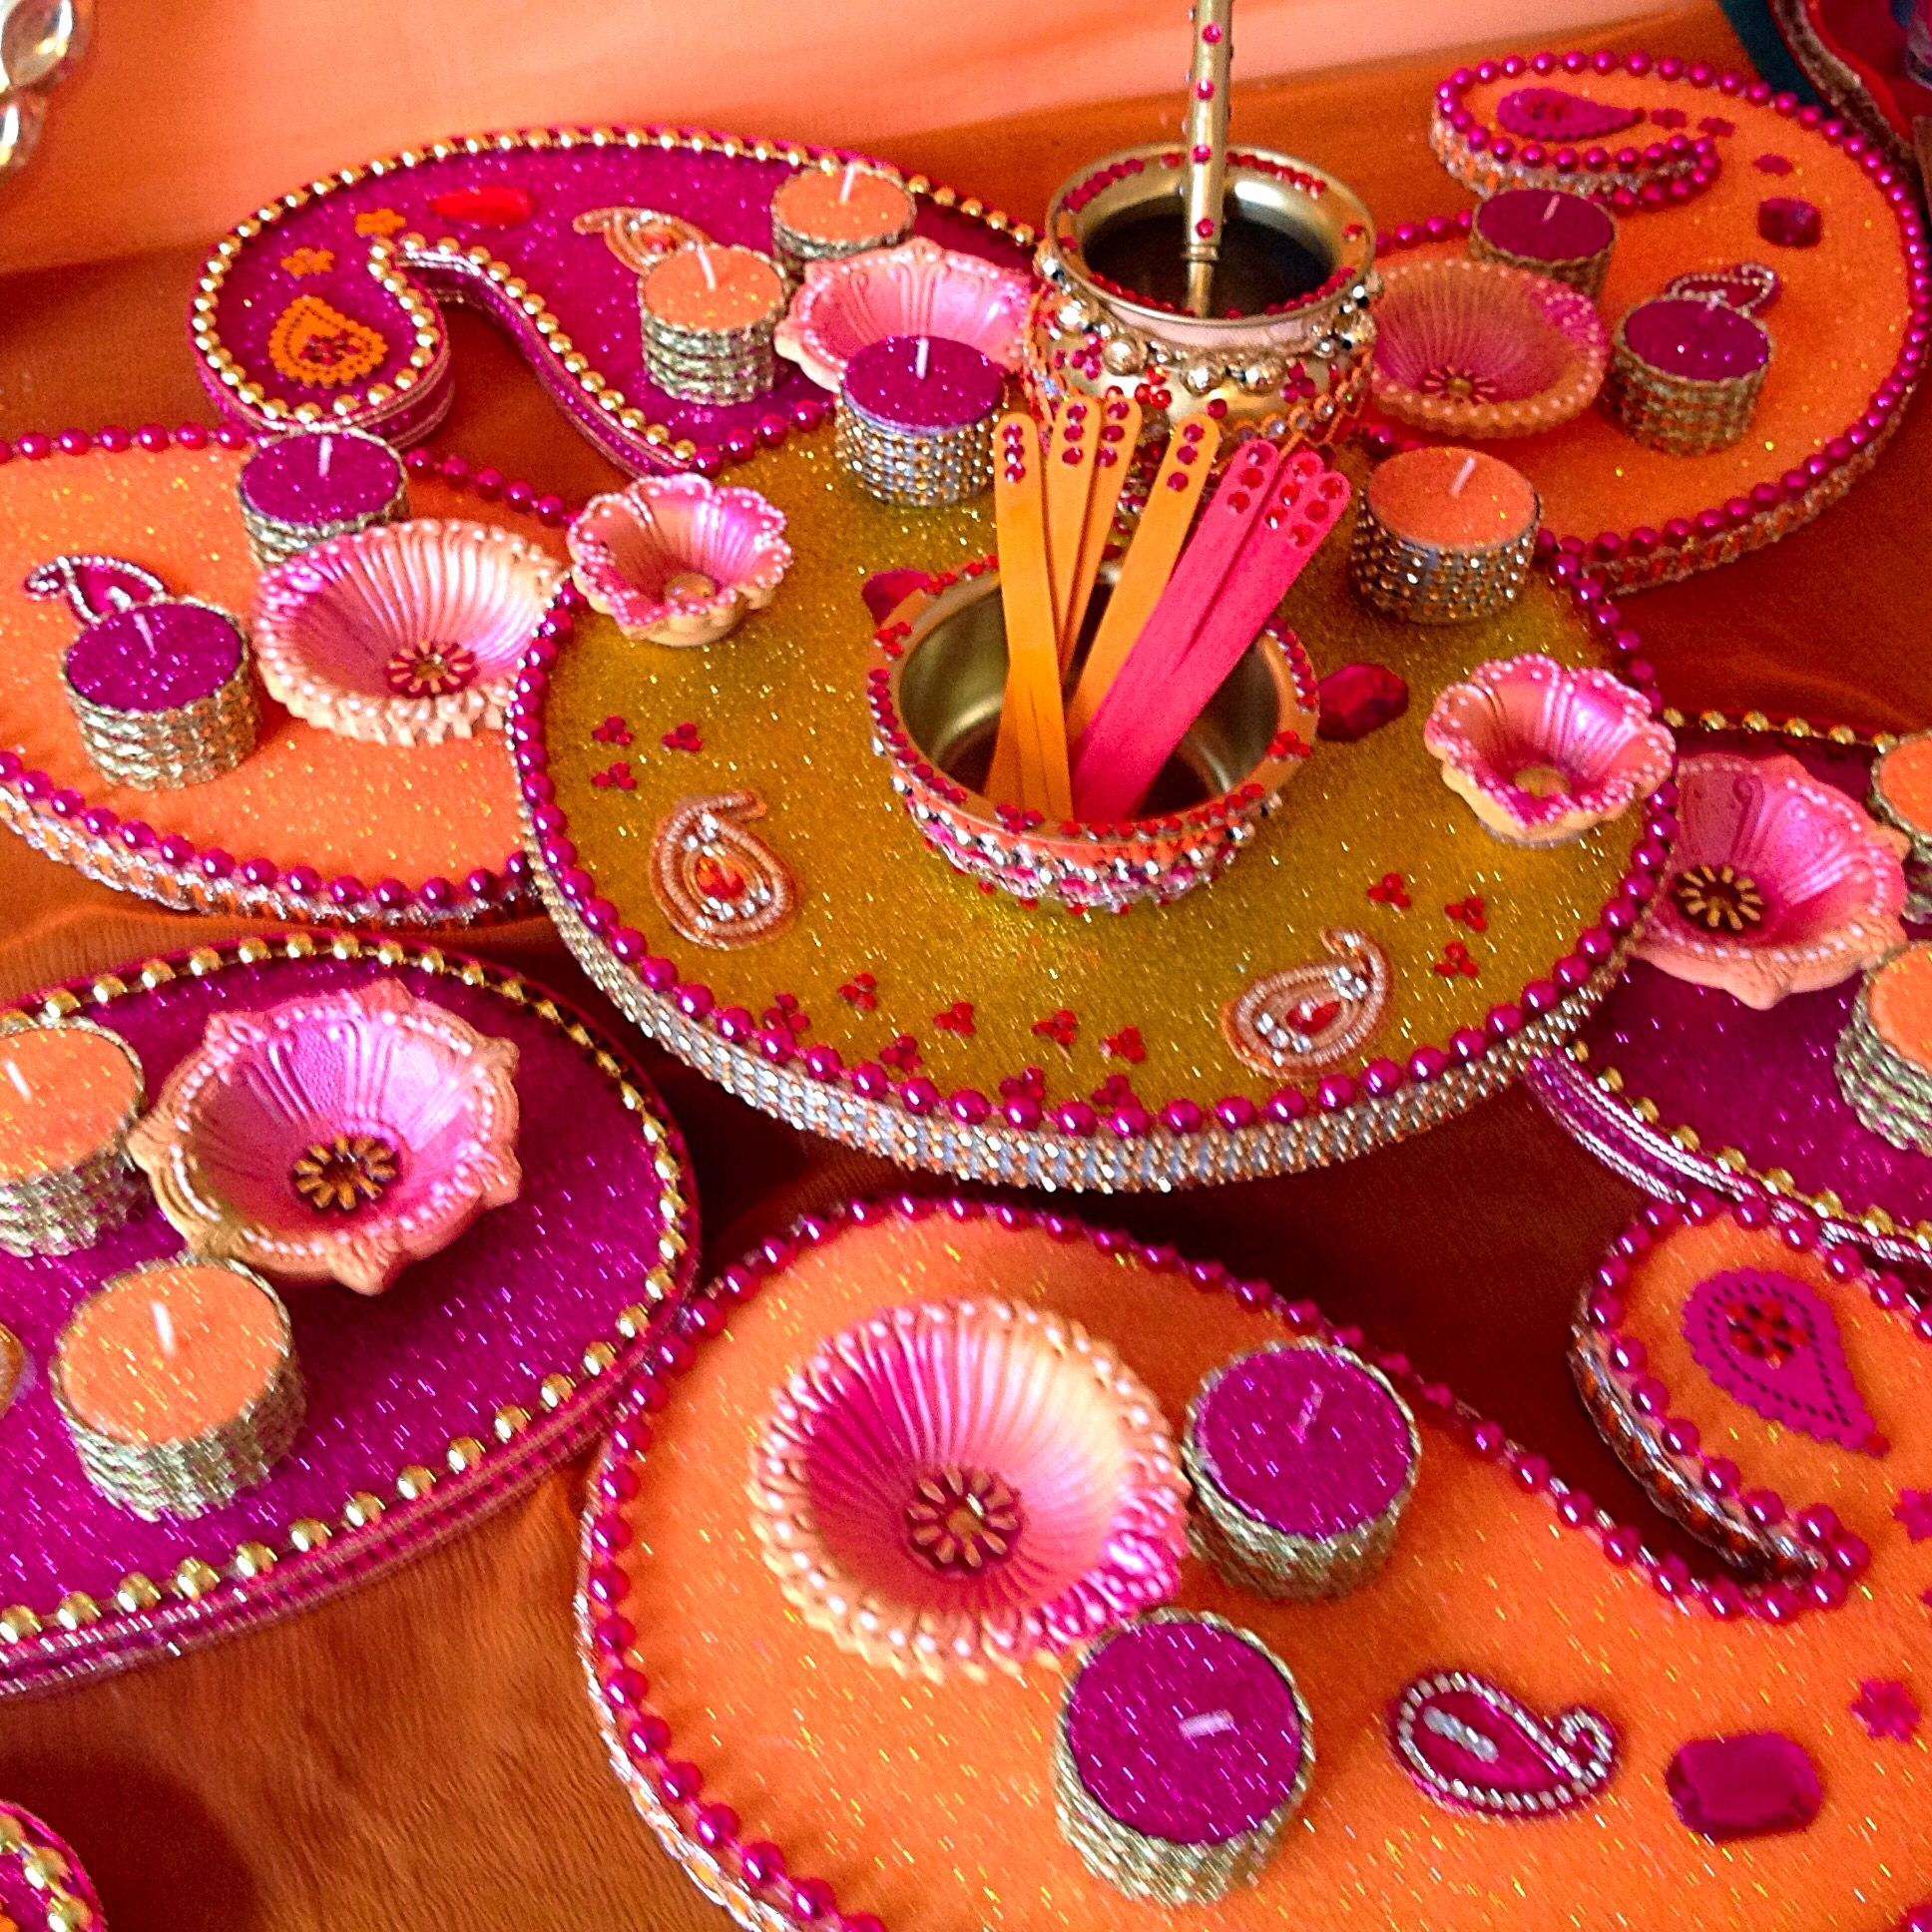 Decoration Of Mehndi Plates : Beautiful pink and orange mehndi plates with matching oil